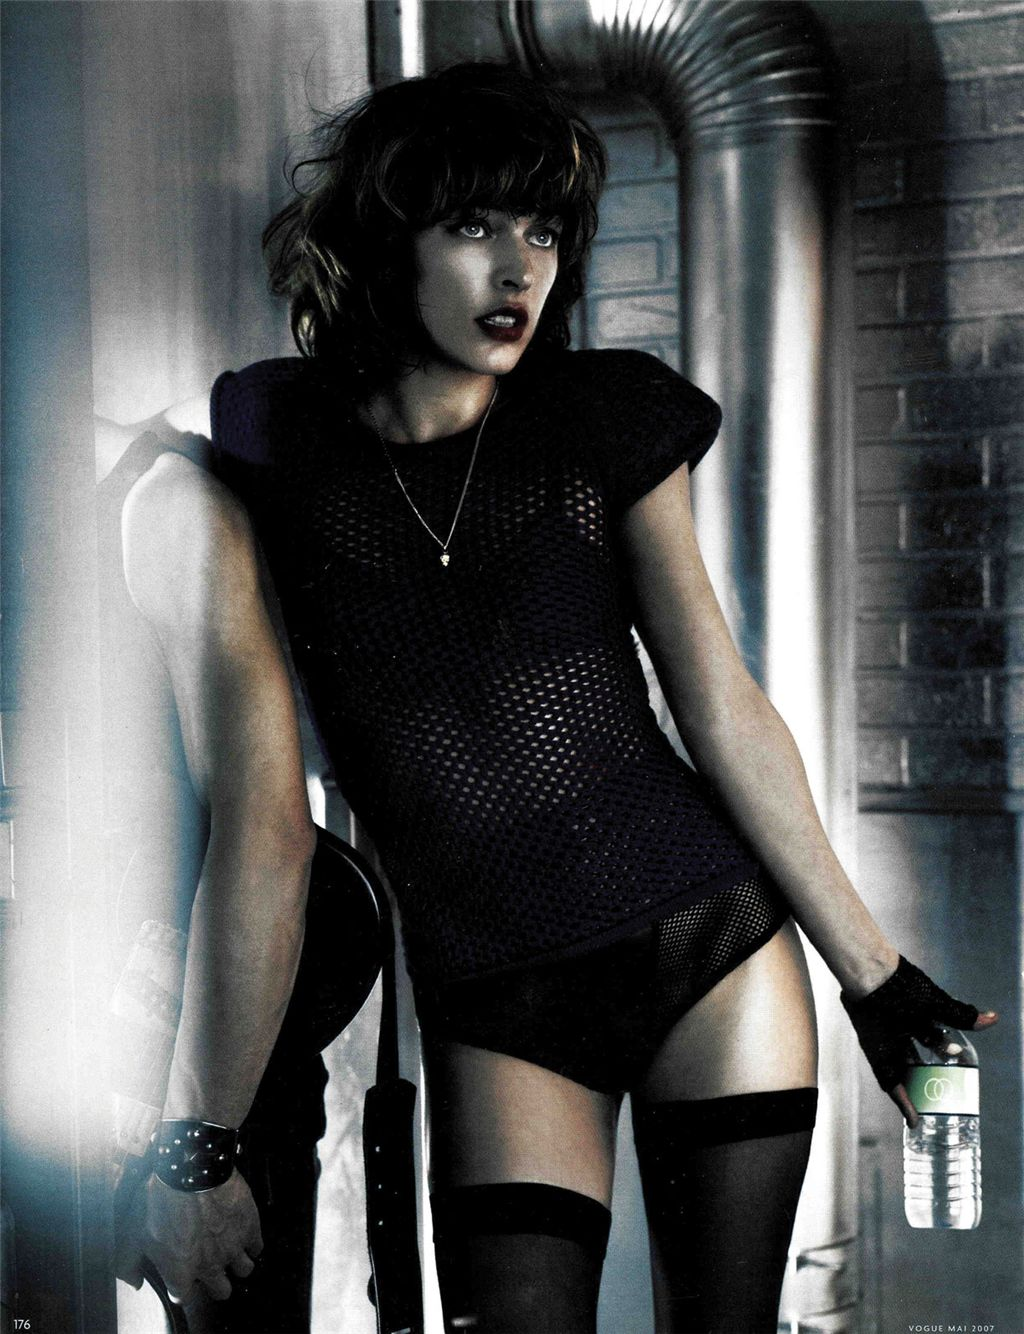 http://ojovovich.narod.ru/index.files/original_images/p0000085.jpg